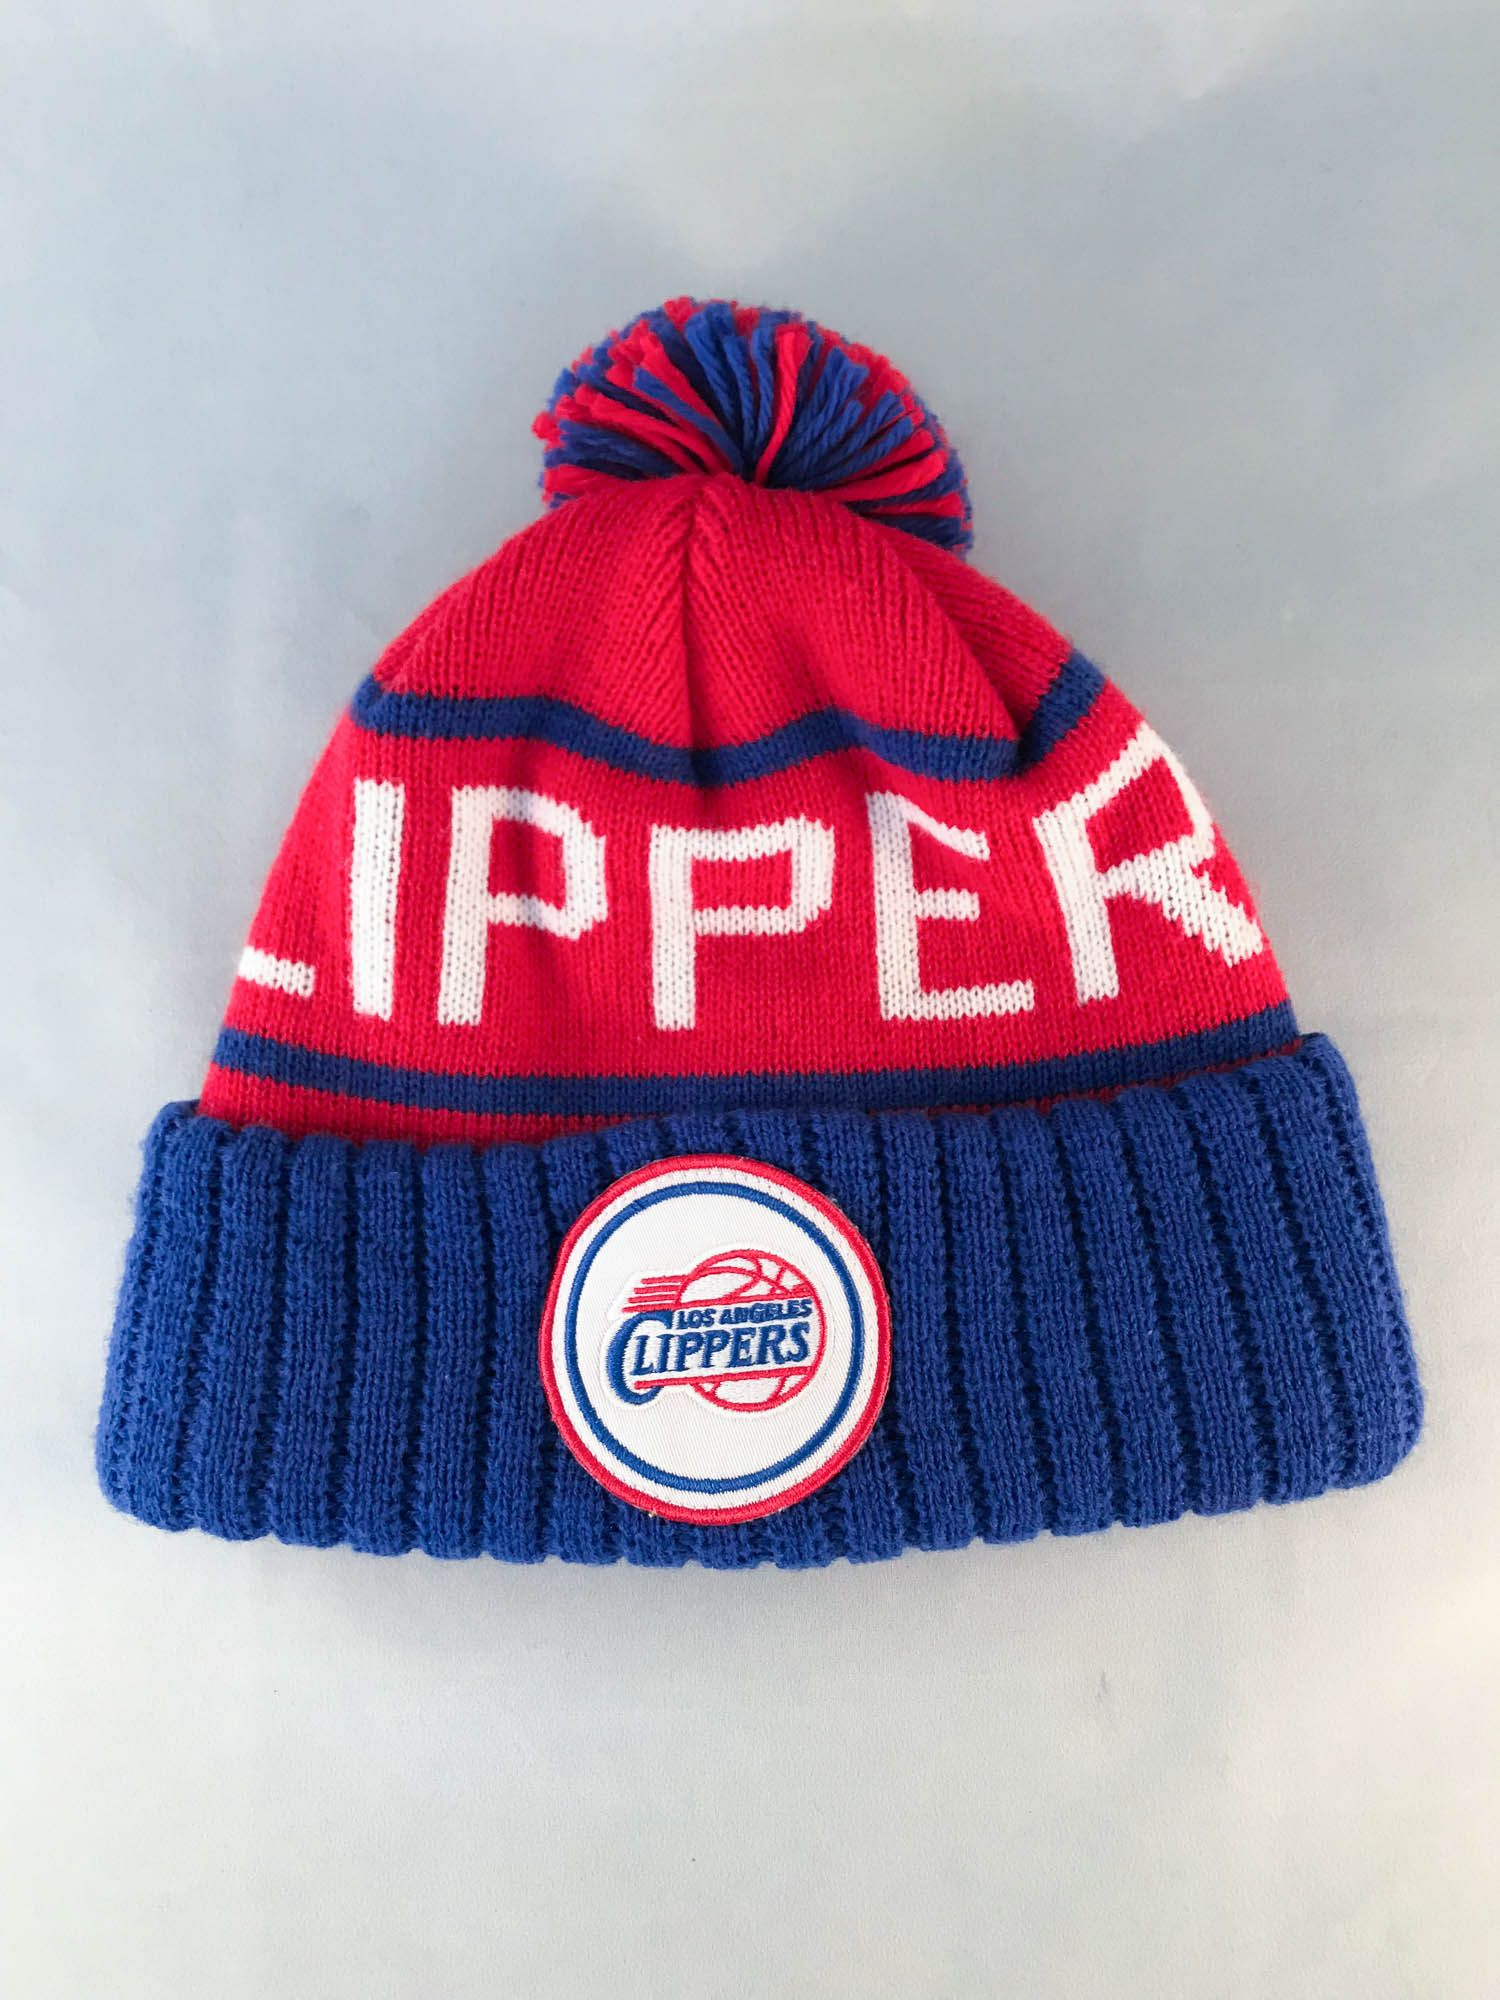 d52faf2bee4 Los Angeles Clippers NBA Pom Beanie by Mitchell and Ness on Blamm.com   LosAngelesClippers  NBA  pom  beanie  Mitchell Ness  LA  clippers